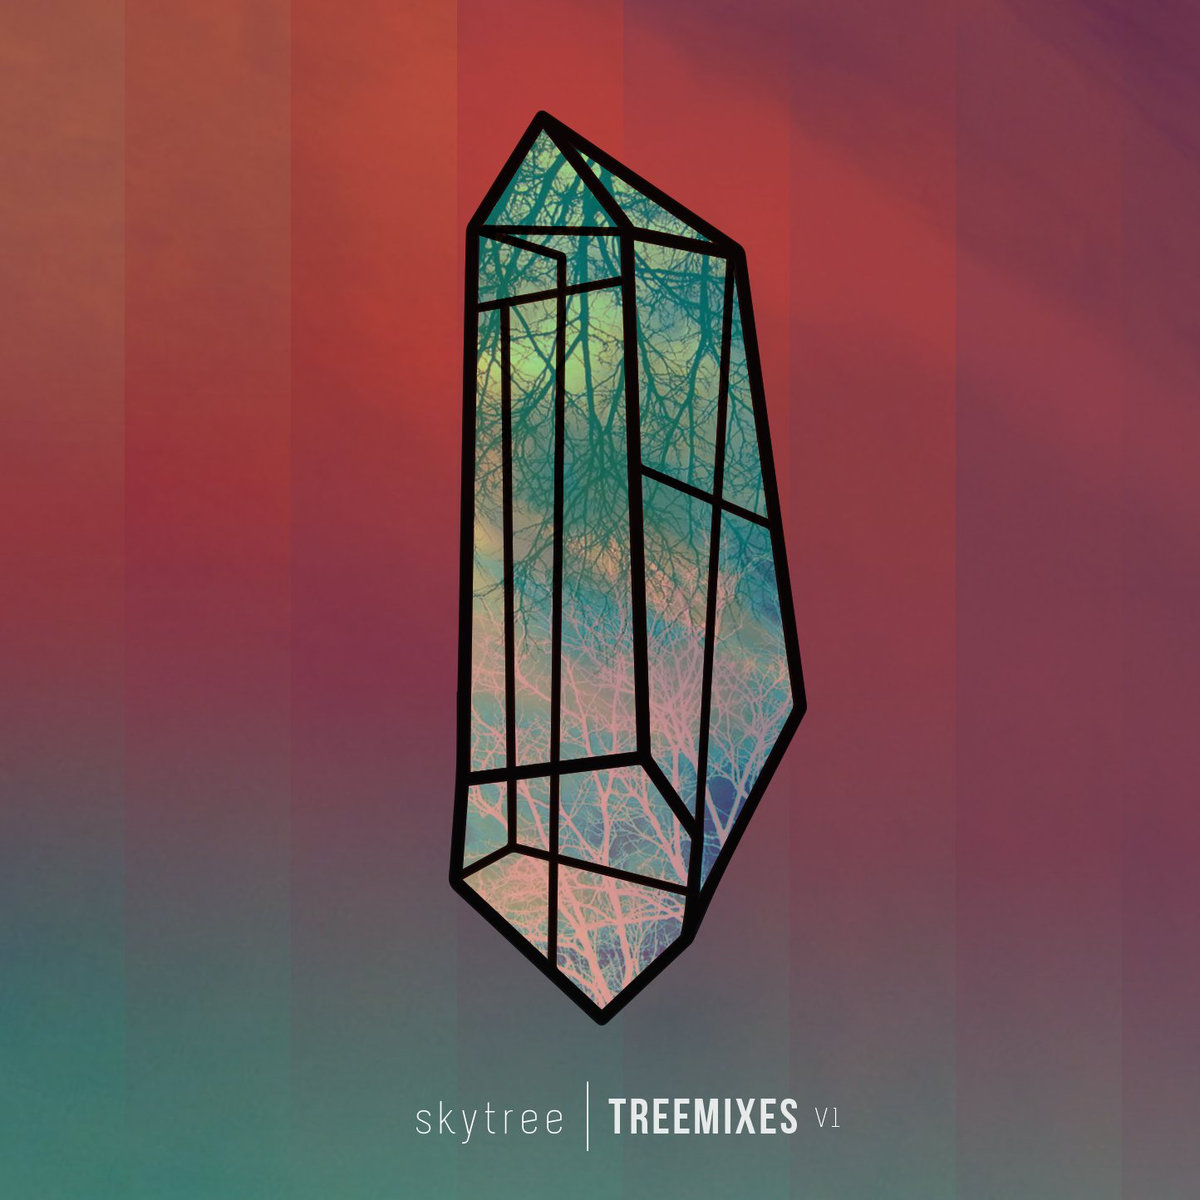 Skytree - Quartz Resonance (Erothyme remix) @ 'Treemixes V1' album (Austin)